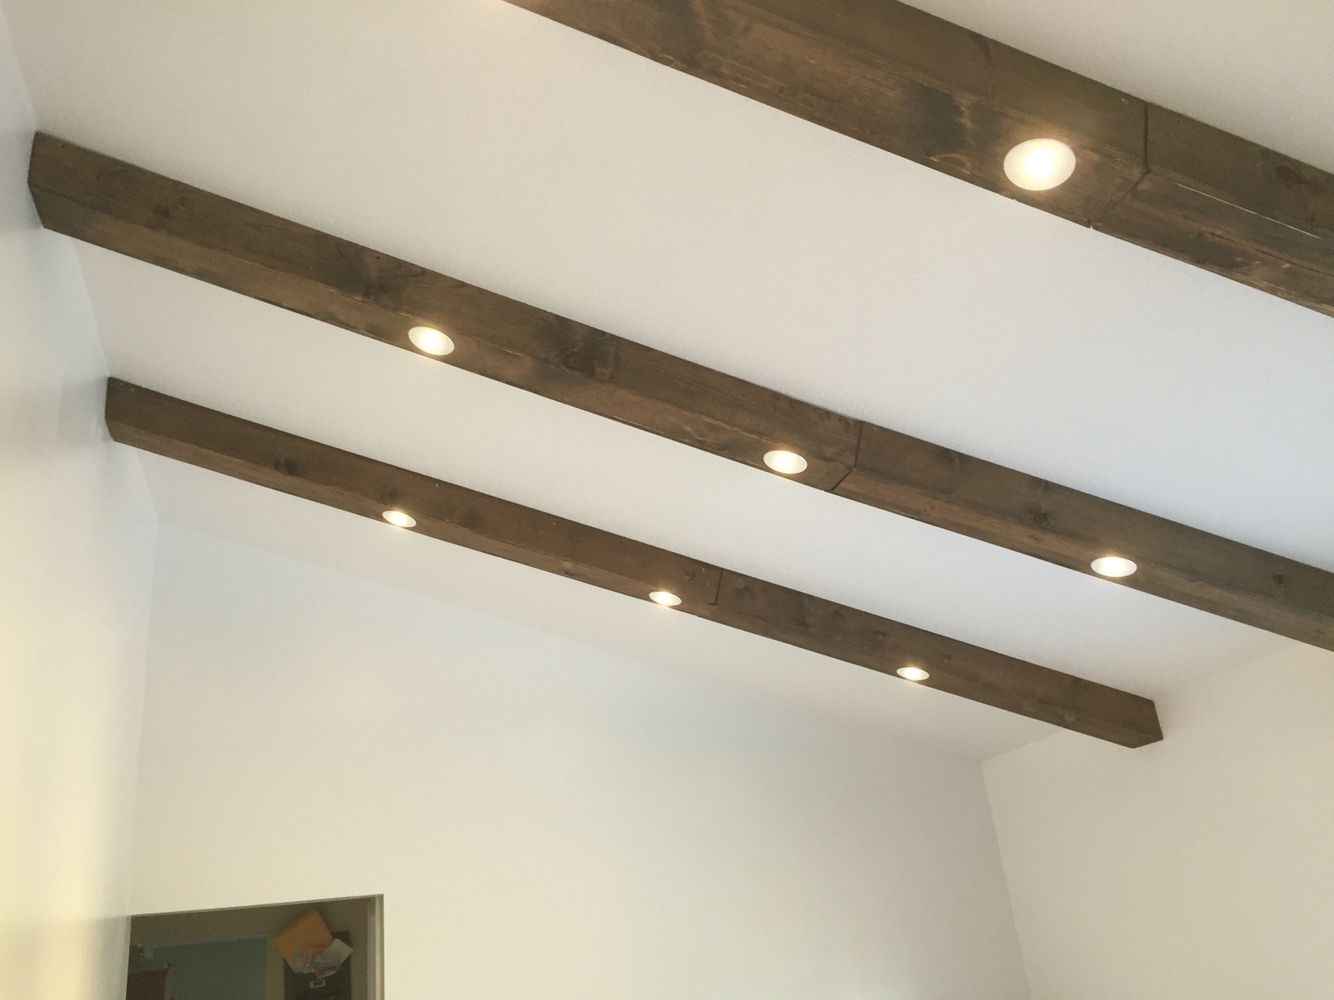 Faux Wood Beams With Recessed Lights Ceiling Beams Living Room Rustic Lighting Bedroom Faux Ceiling Beams